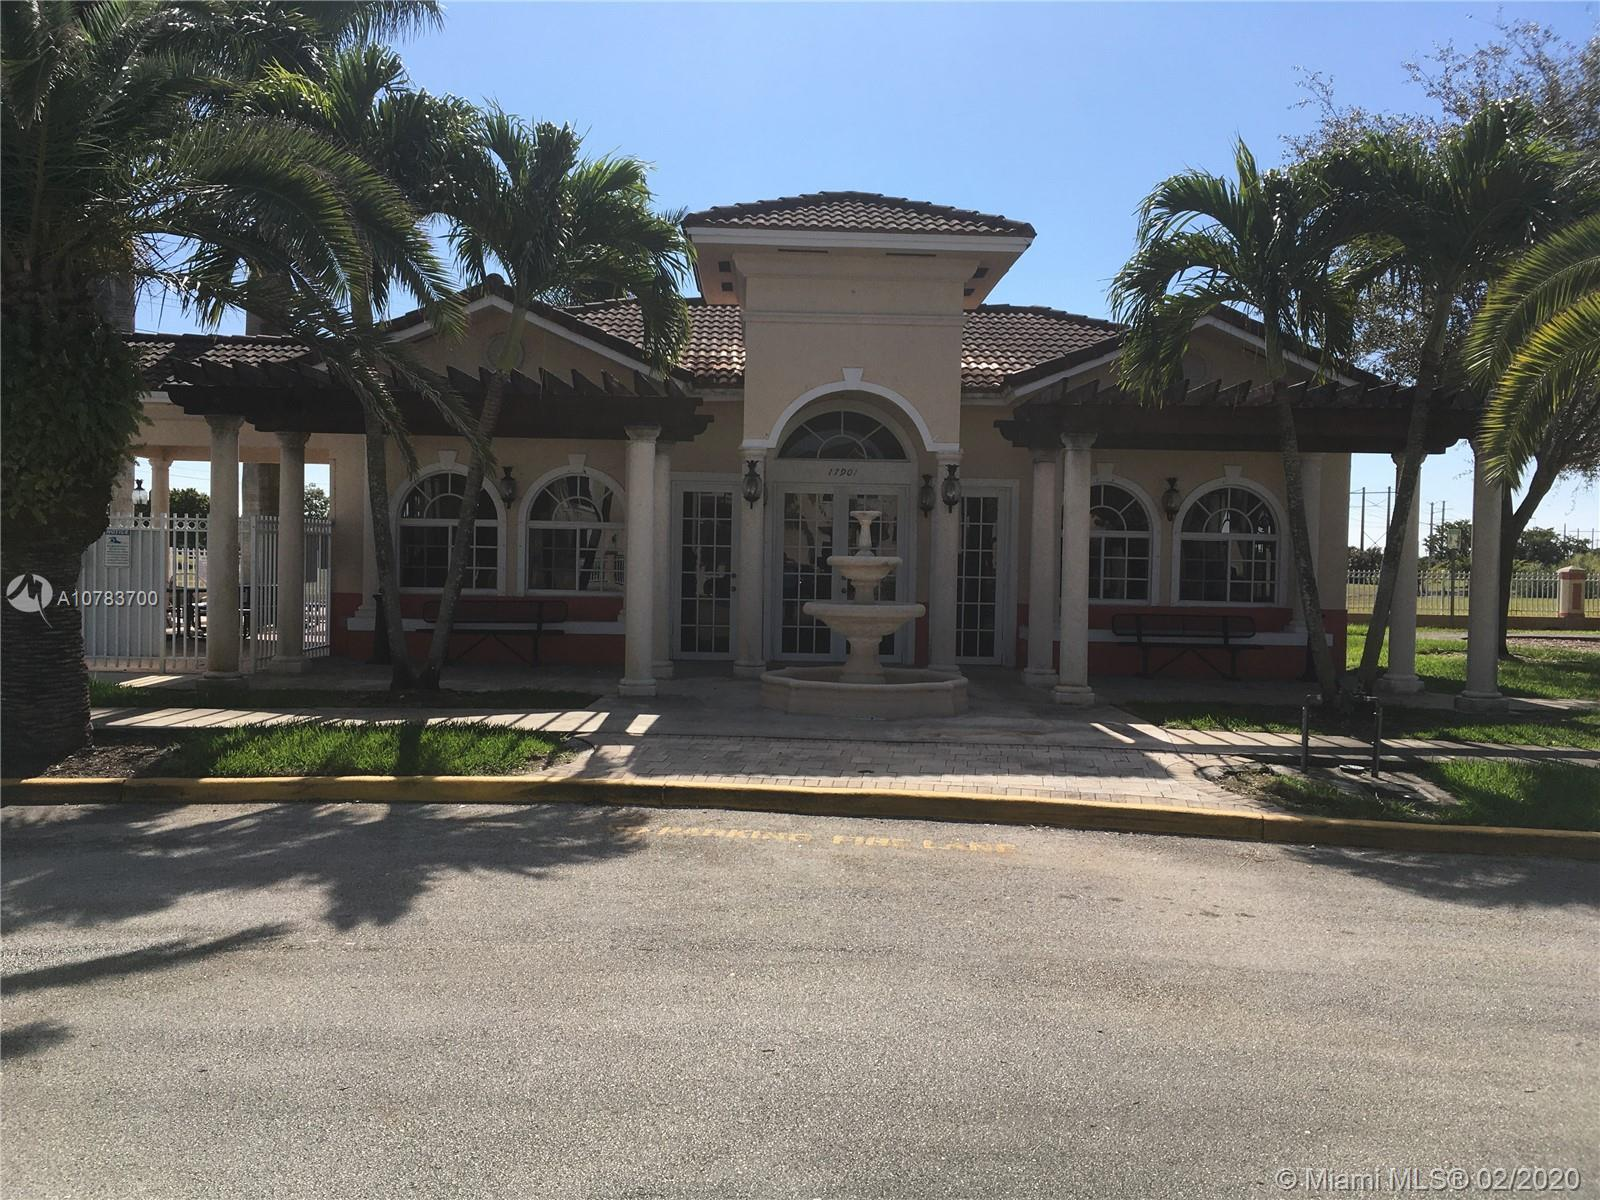 17968 NW 74th Ct #17968 For Sale A10783700, FL